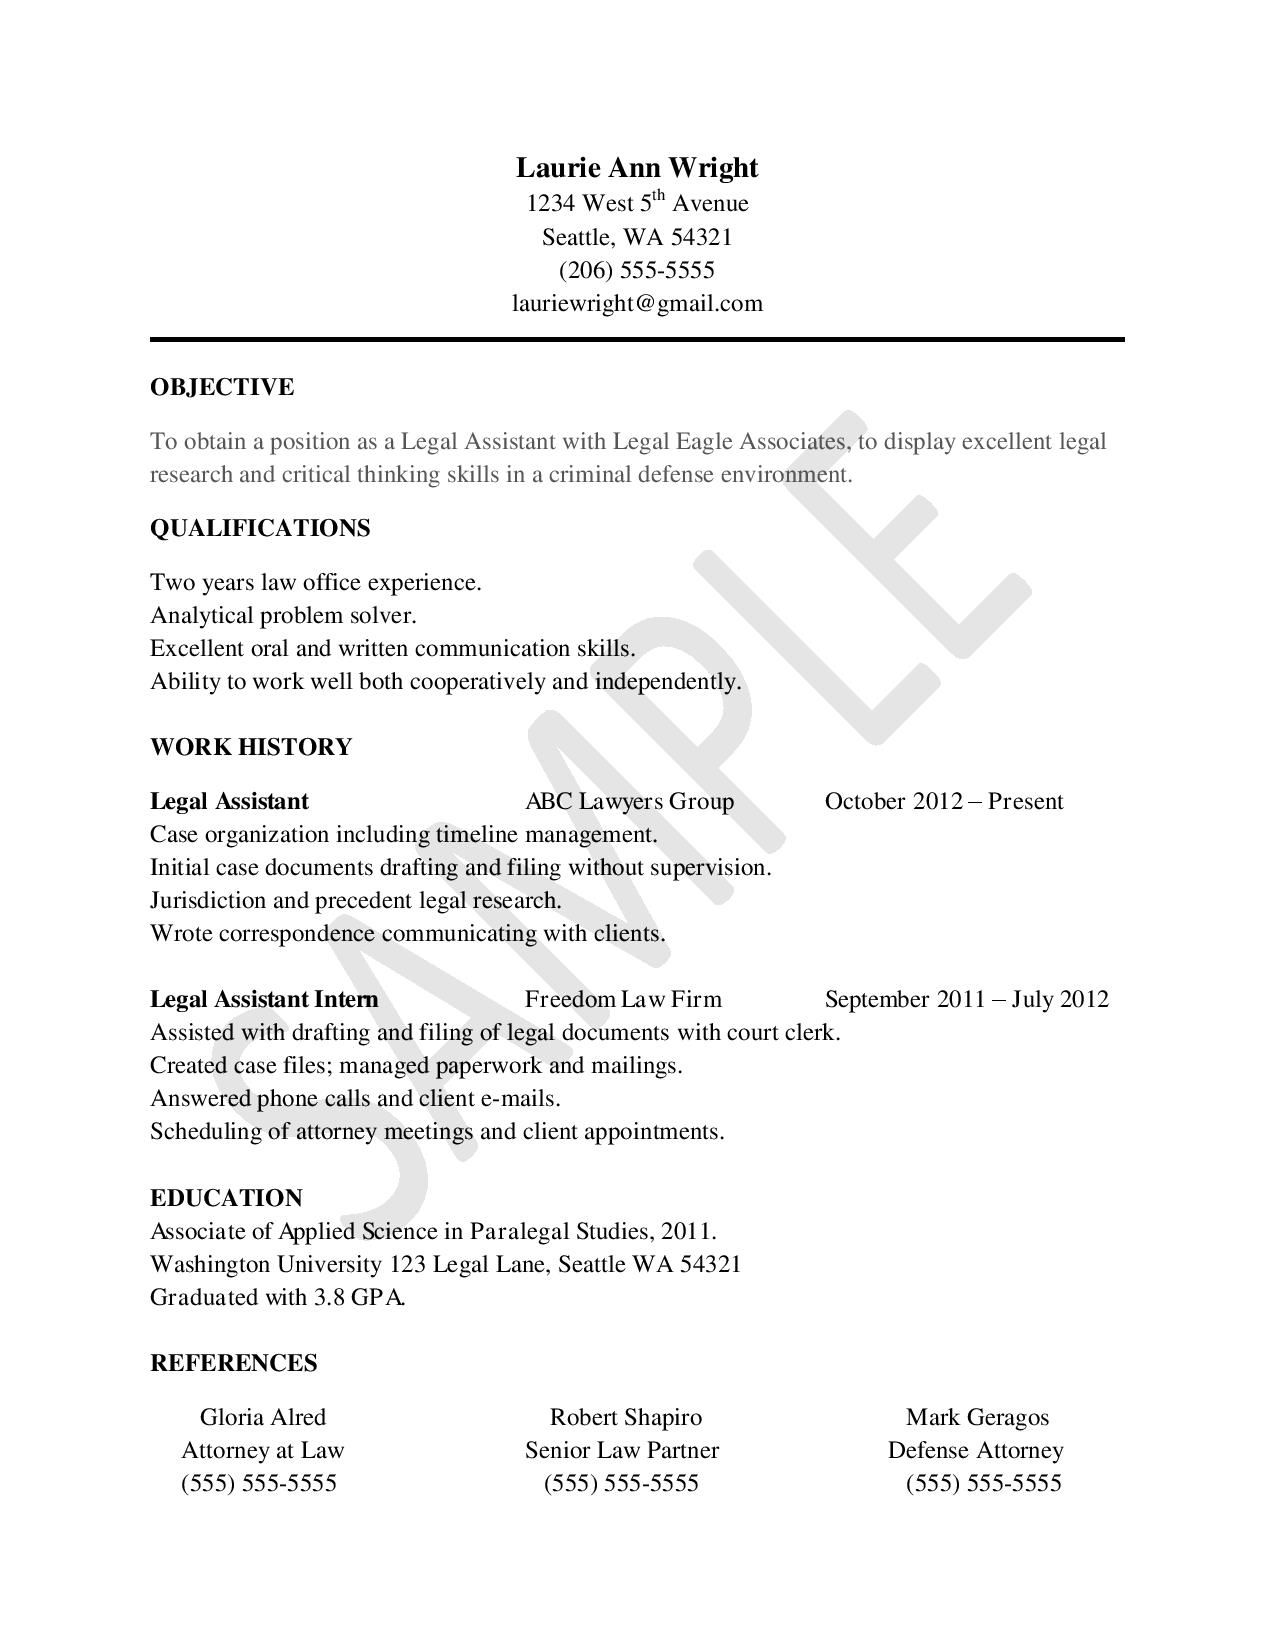 Sample Resume For Legal Assistants  How To Write A Resume Resume